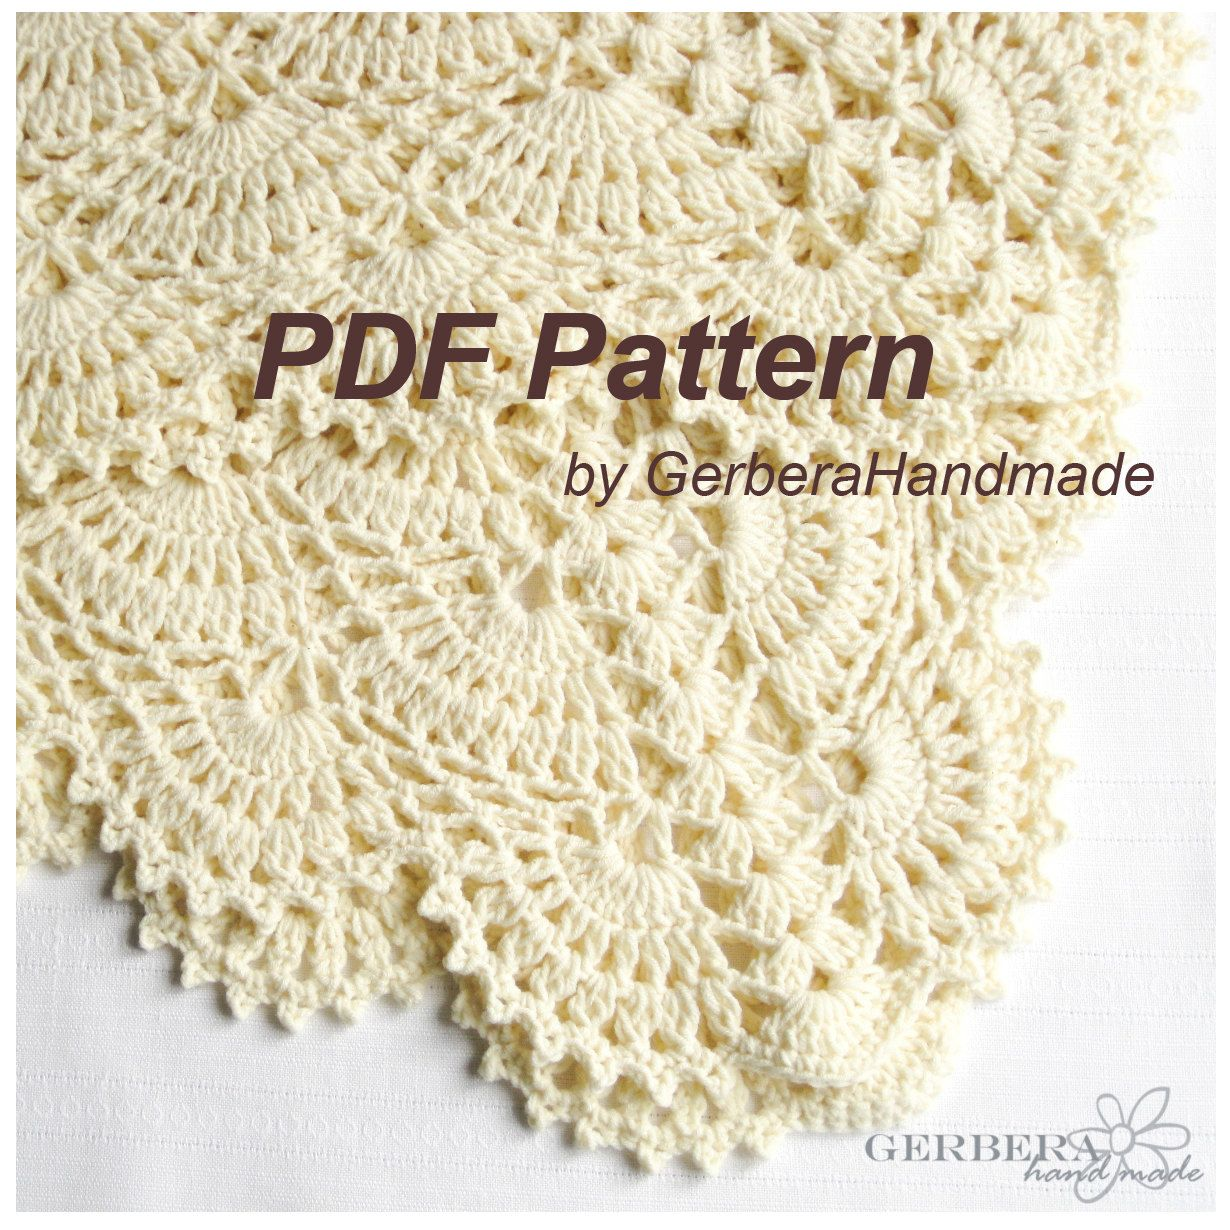 Crochet pattern baby blanket tutorial crochet pdf creame baby crochet pattern baby blanket tutorial crochet pdf creame baby afghan ebook ordered this pattern bankloansurffo Image collections